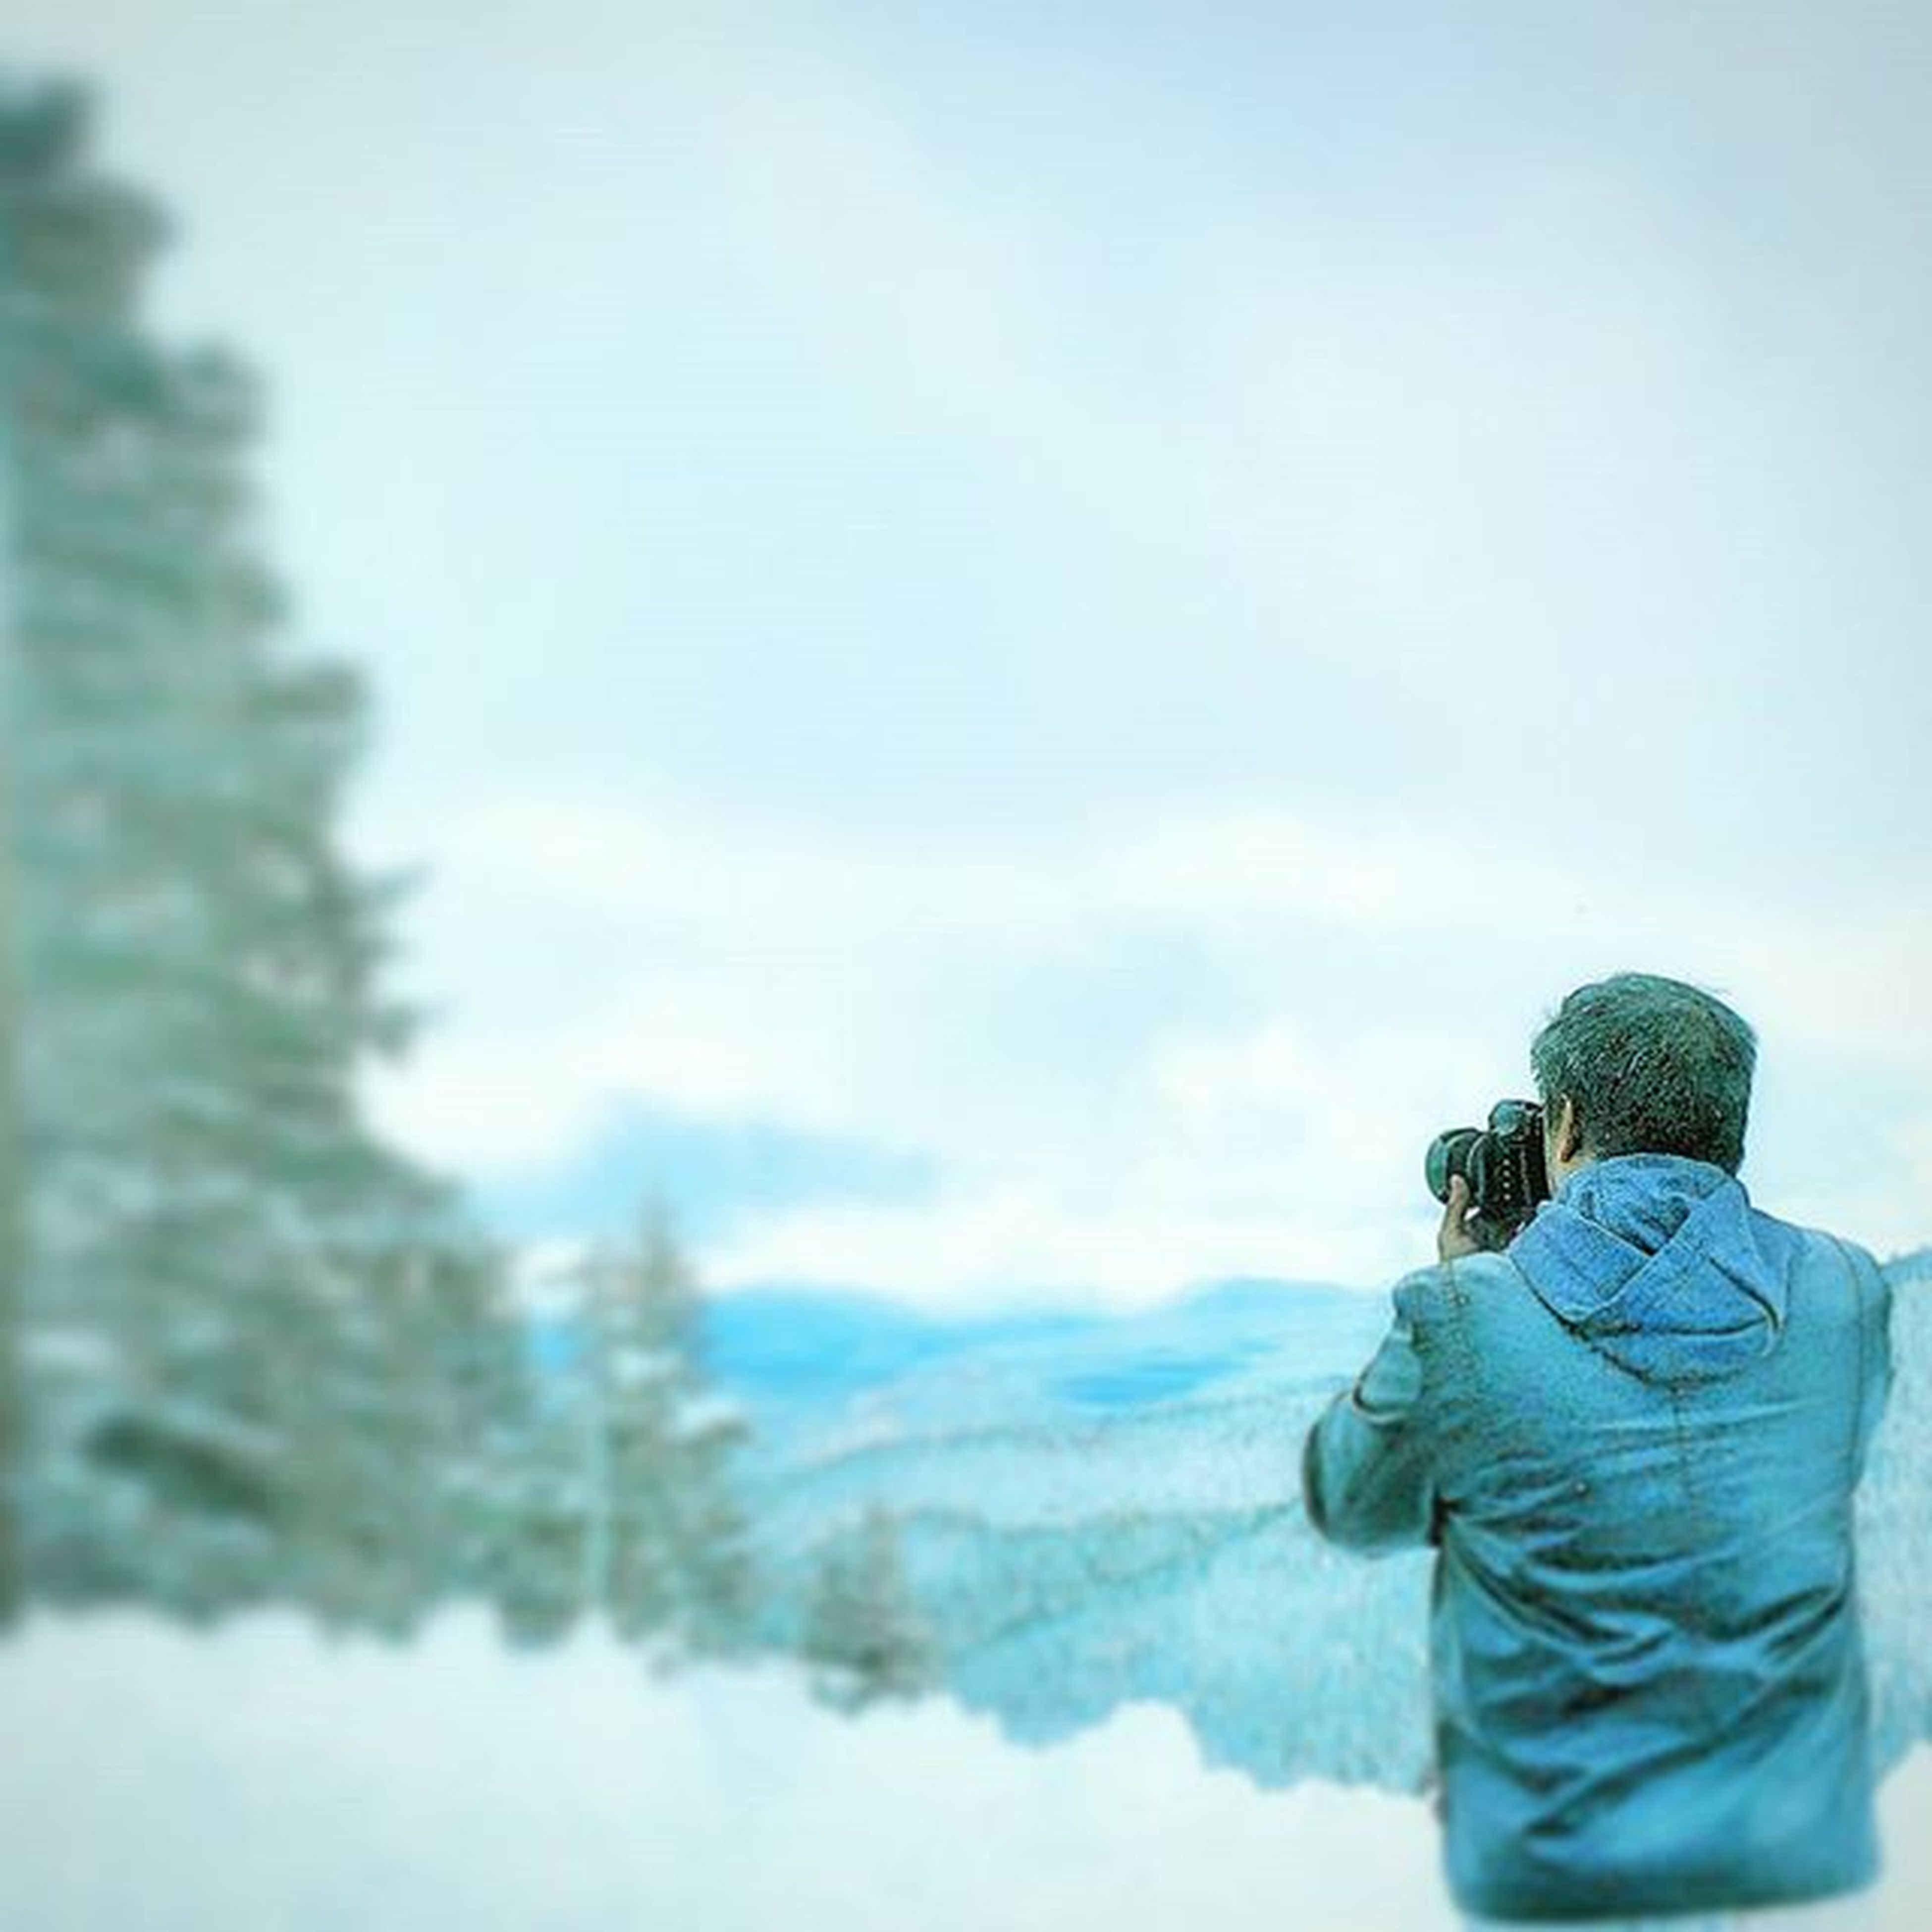 sky, lifestyles, men, weather, leisure activity, mountain, rear view, winter, cloud - sky, standing, cold temperature, snow, tranquility, nature, focus on foreground, day, tranquil scene, outdoors